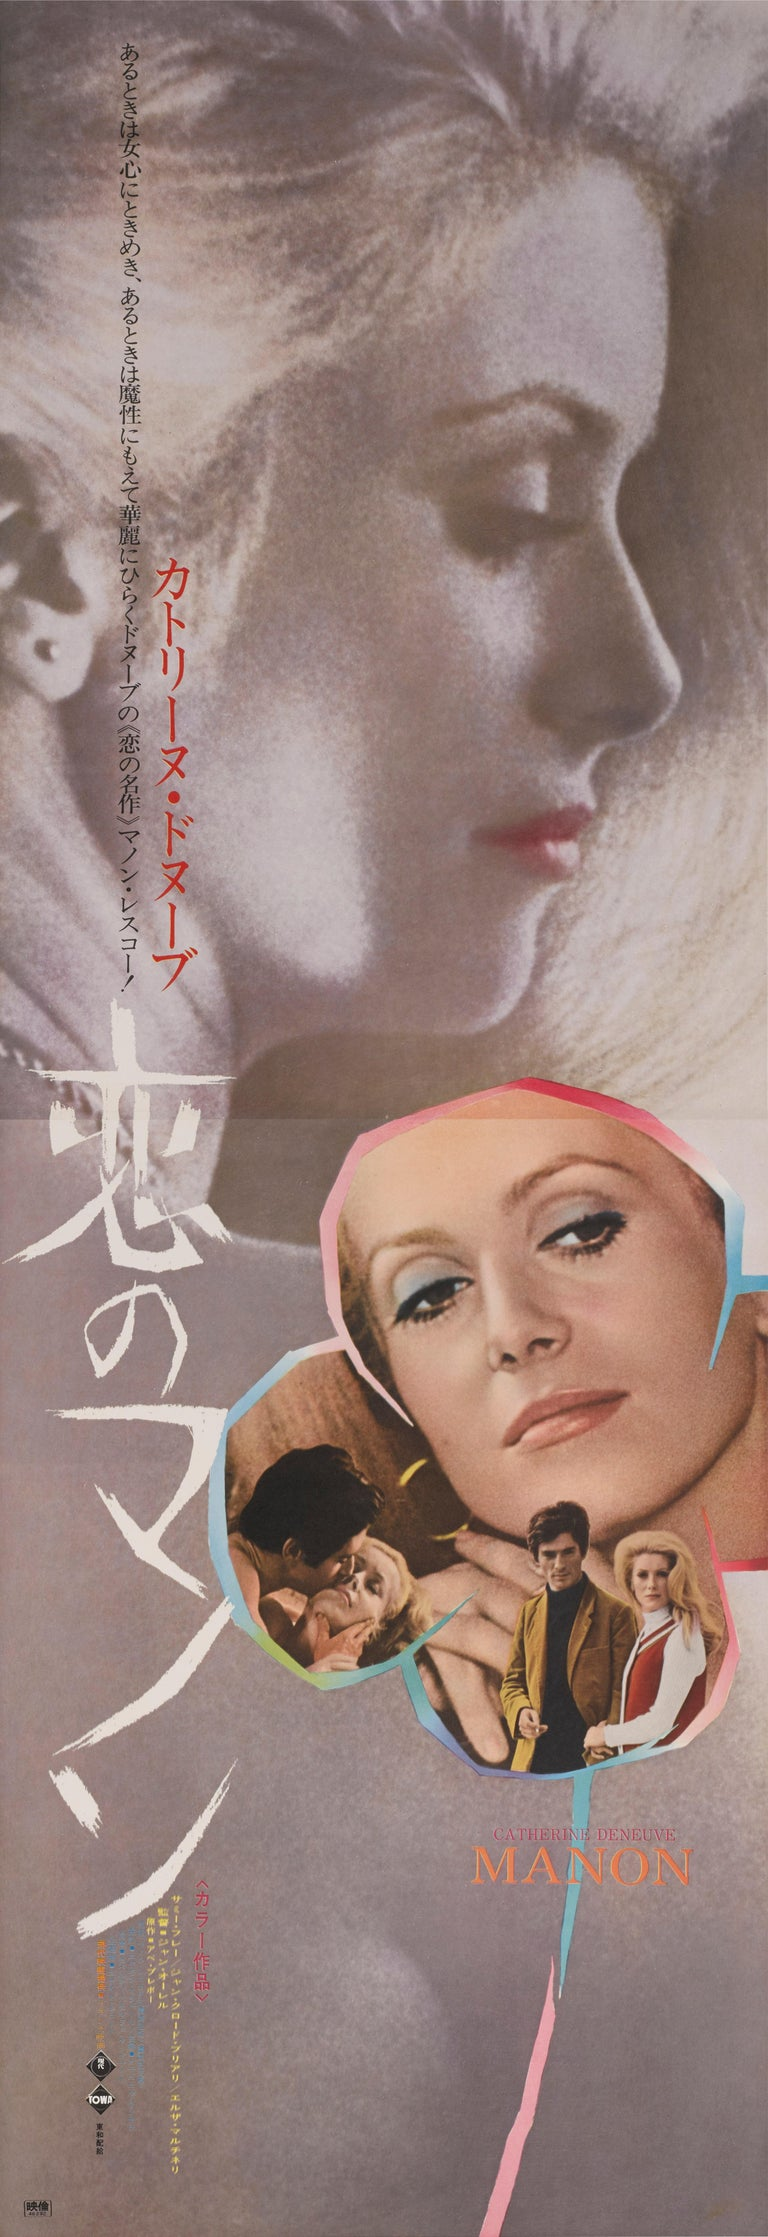 Original Japanese film poster for Jane Aurel's 1968 drama starring Catherine Deneuve, Jean Claude Brialy The poster was printed in two sheets and is now conservation Linen backed and in excellent condition and the colors are very bright. The poster